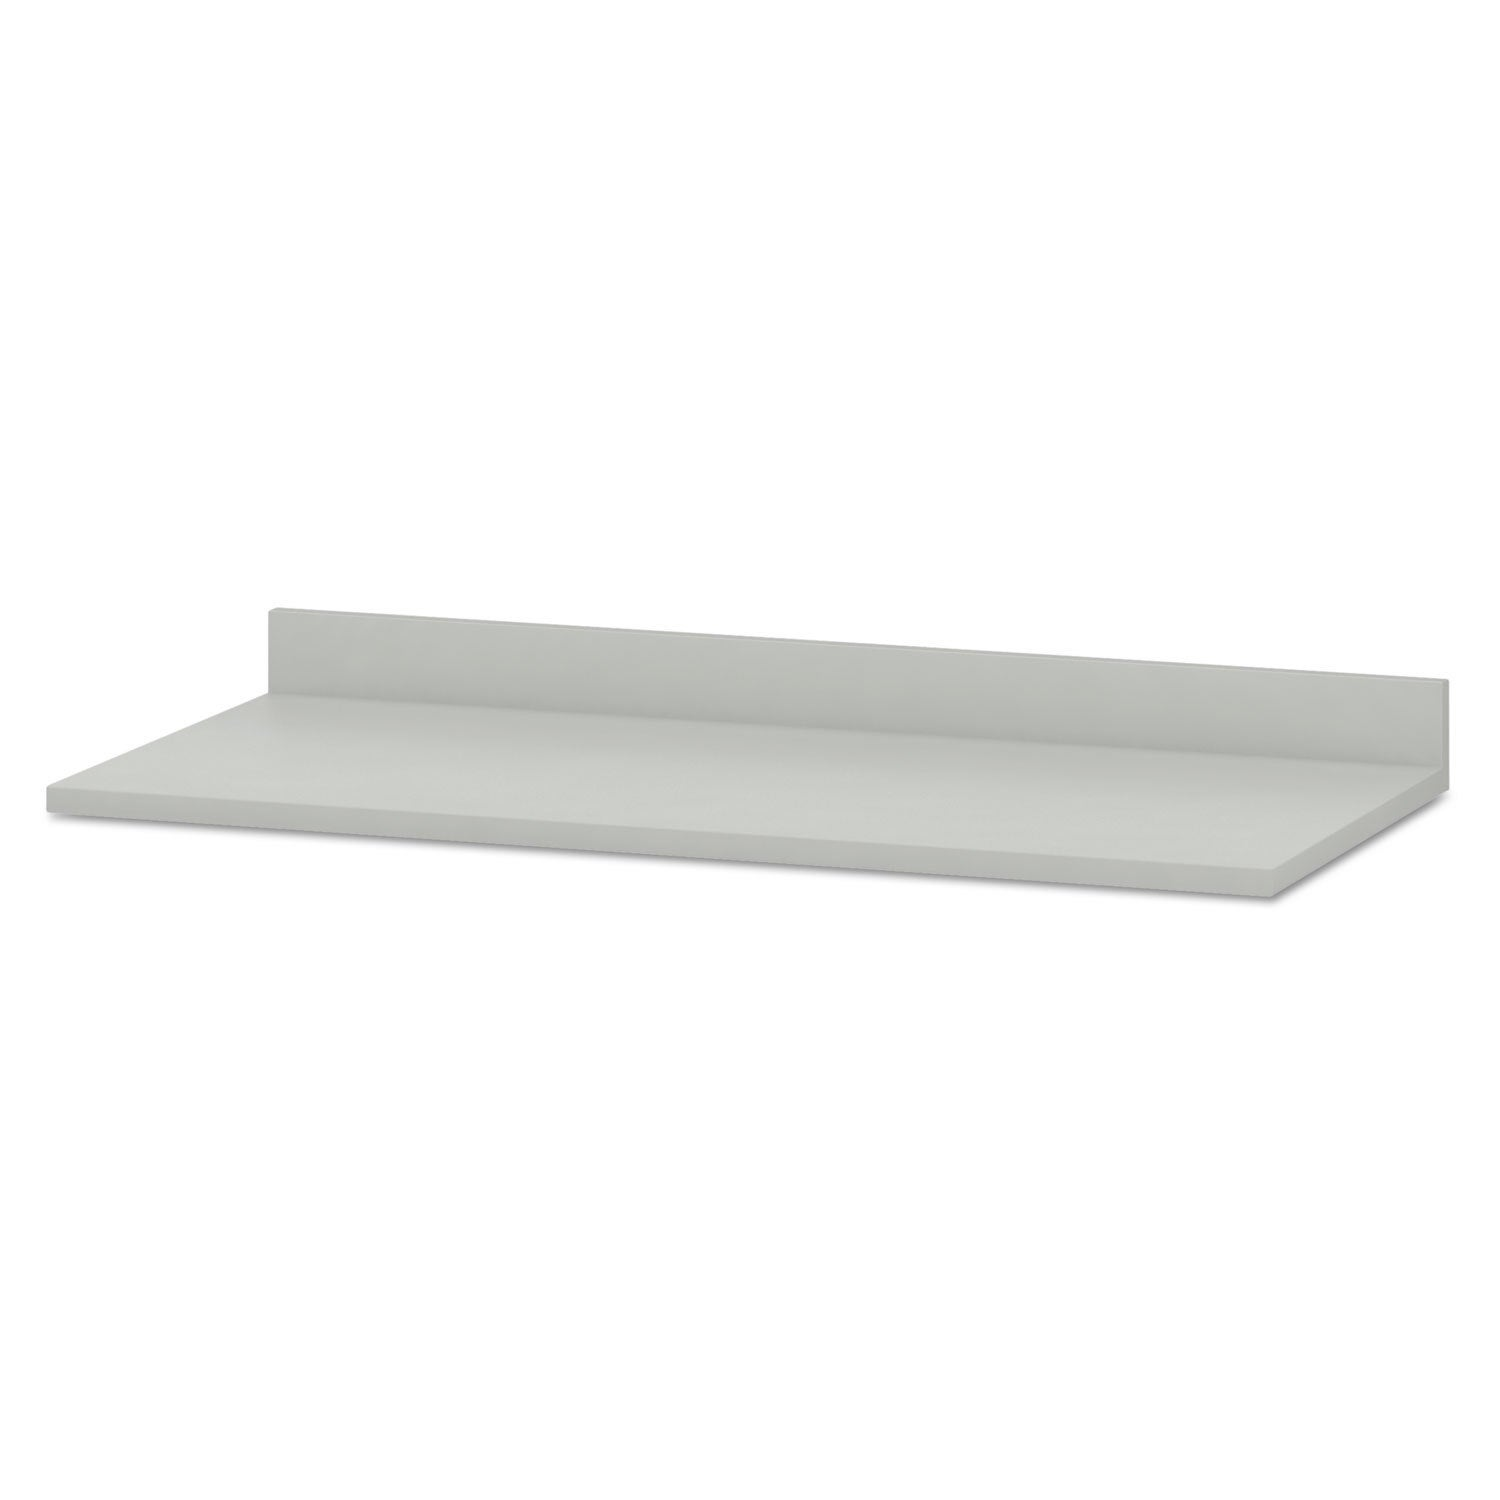 HON Hospitality Cabinet Modular Countertop 54-inch wide x...